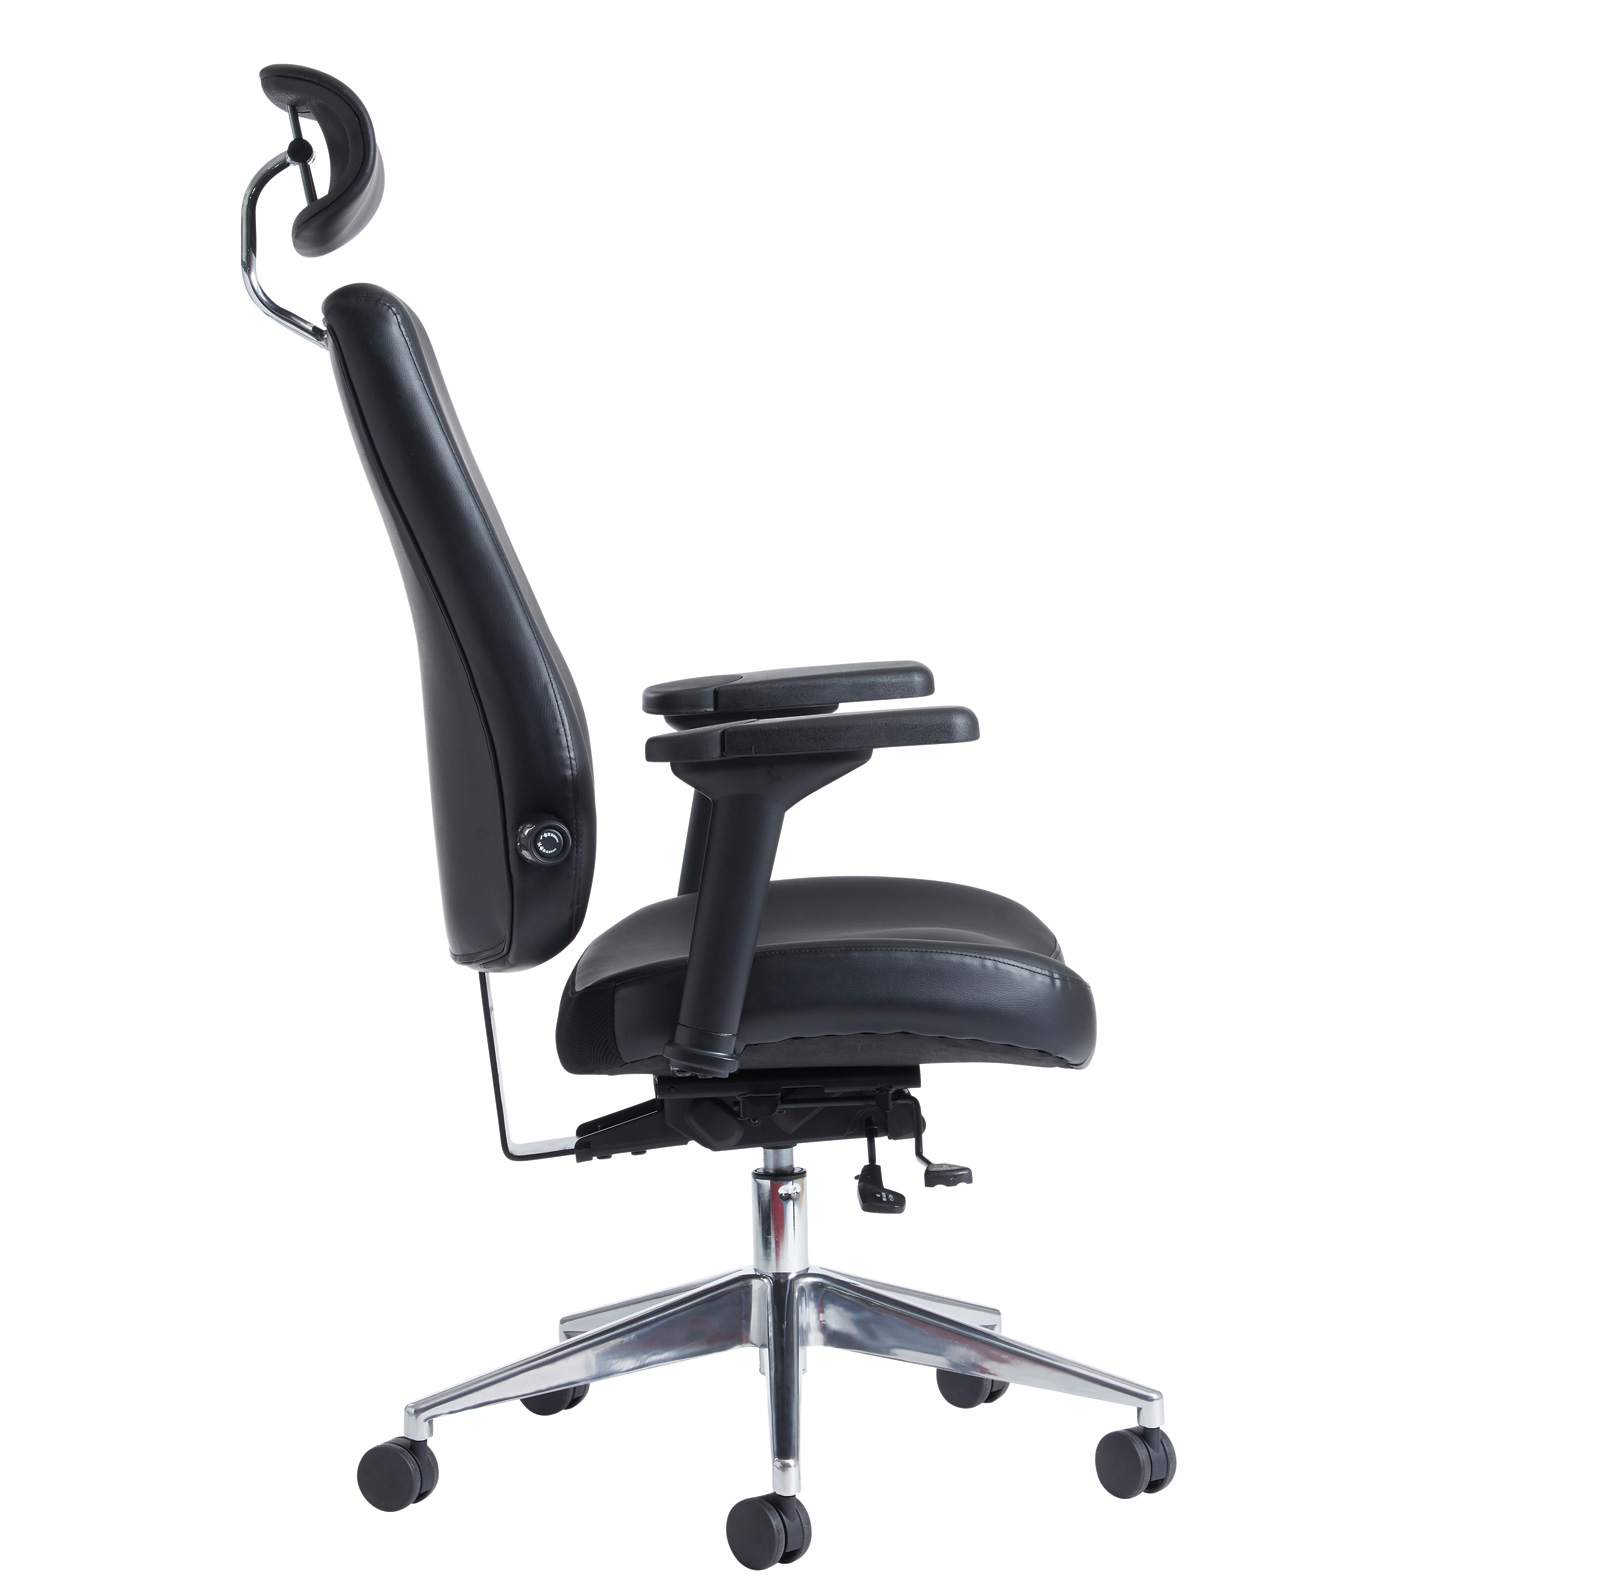 posture promoting chair papasan with cushion and frame franklin heavy duty 24 hour office